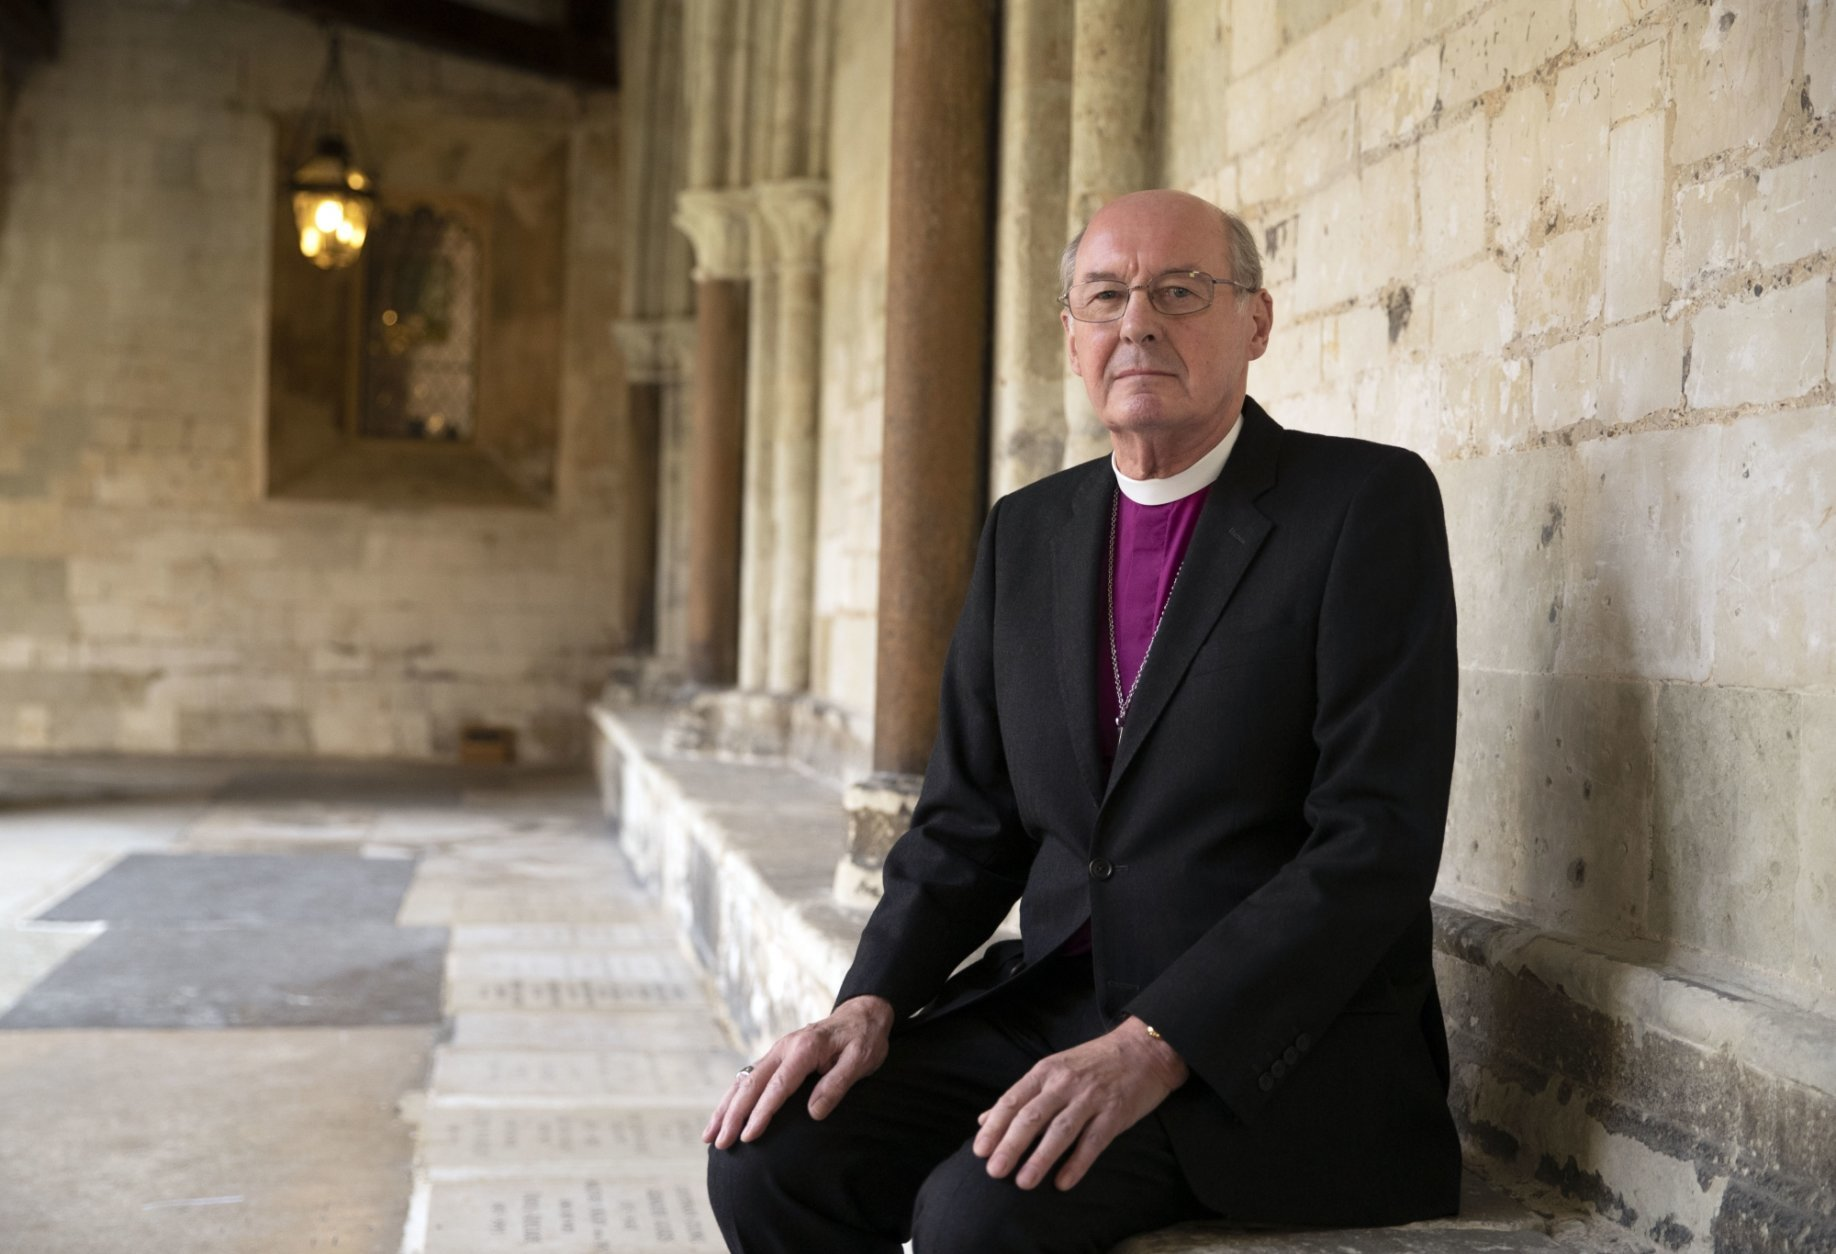 The Rt Revd David Conner, Dean of Windsor, on Thursday Oct. 11, 2018, who will conduct the wedding of Britain's Princess Eugenie and Jack Brooksbank on Friday. (Steve Parsons/Pool via AP)